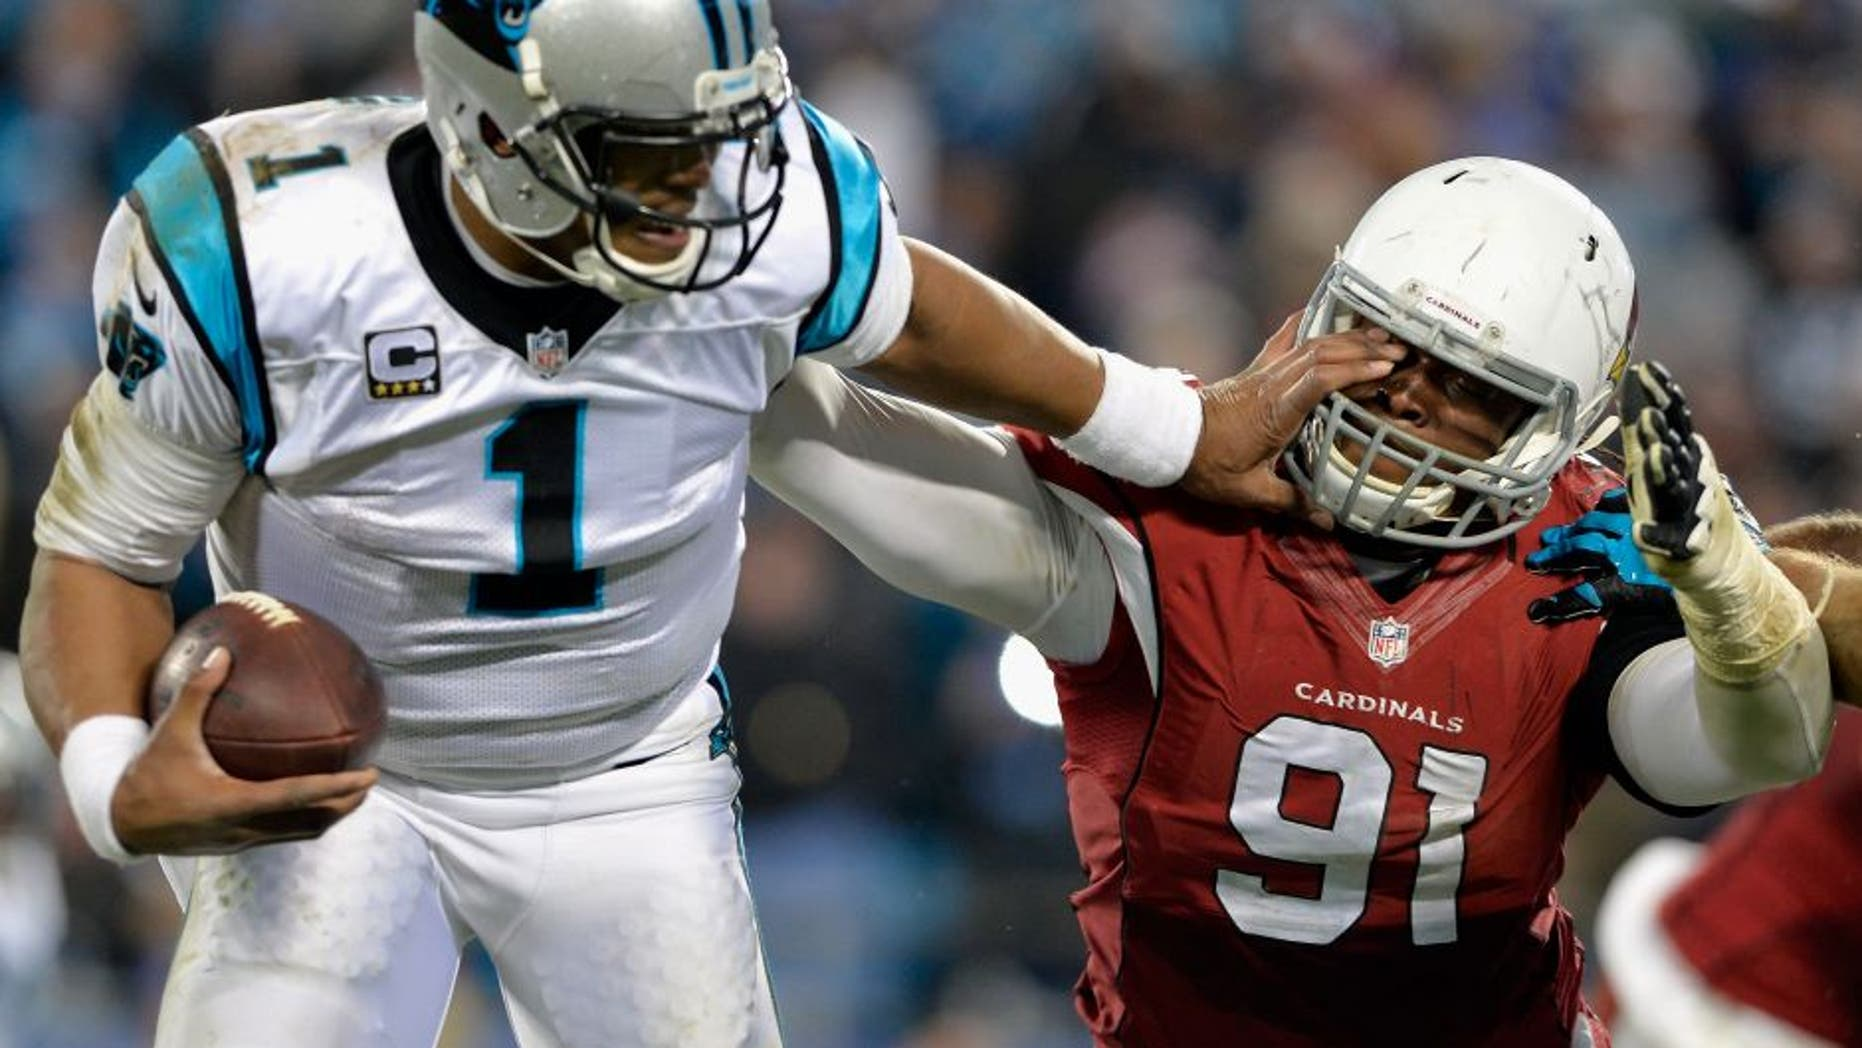 CHARLOTTE, NC - JANUARY 24: Cam Newton #1 of the Carolina Panthers stiff arms Ed Stinson #91 of the Arizona Cardinals in the second half during the NFC Championship Game at Bank of America Stadium on January 24, 2016 in Charlotte, North Carolina. (Photo by Grant Halverson/Getty Images)